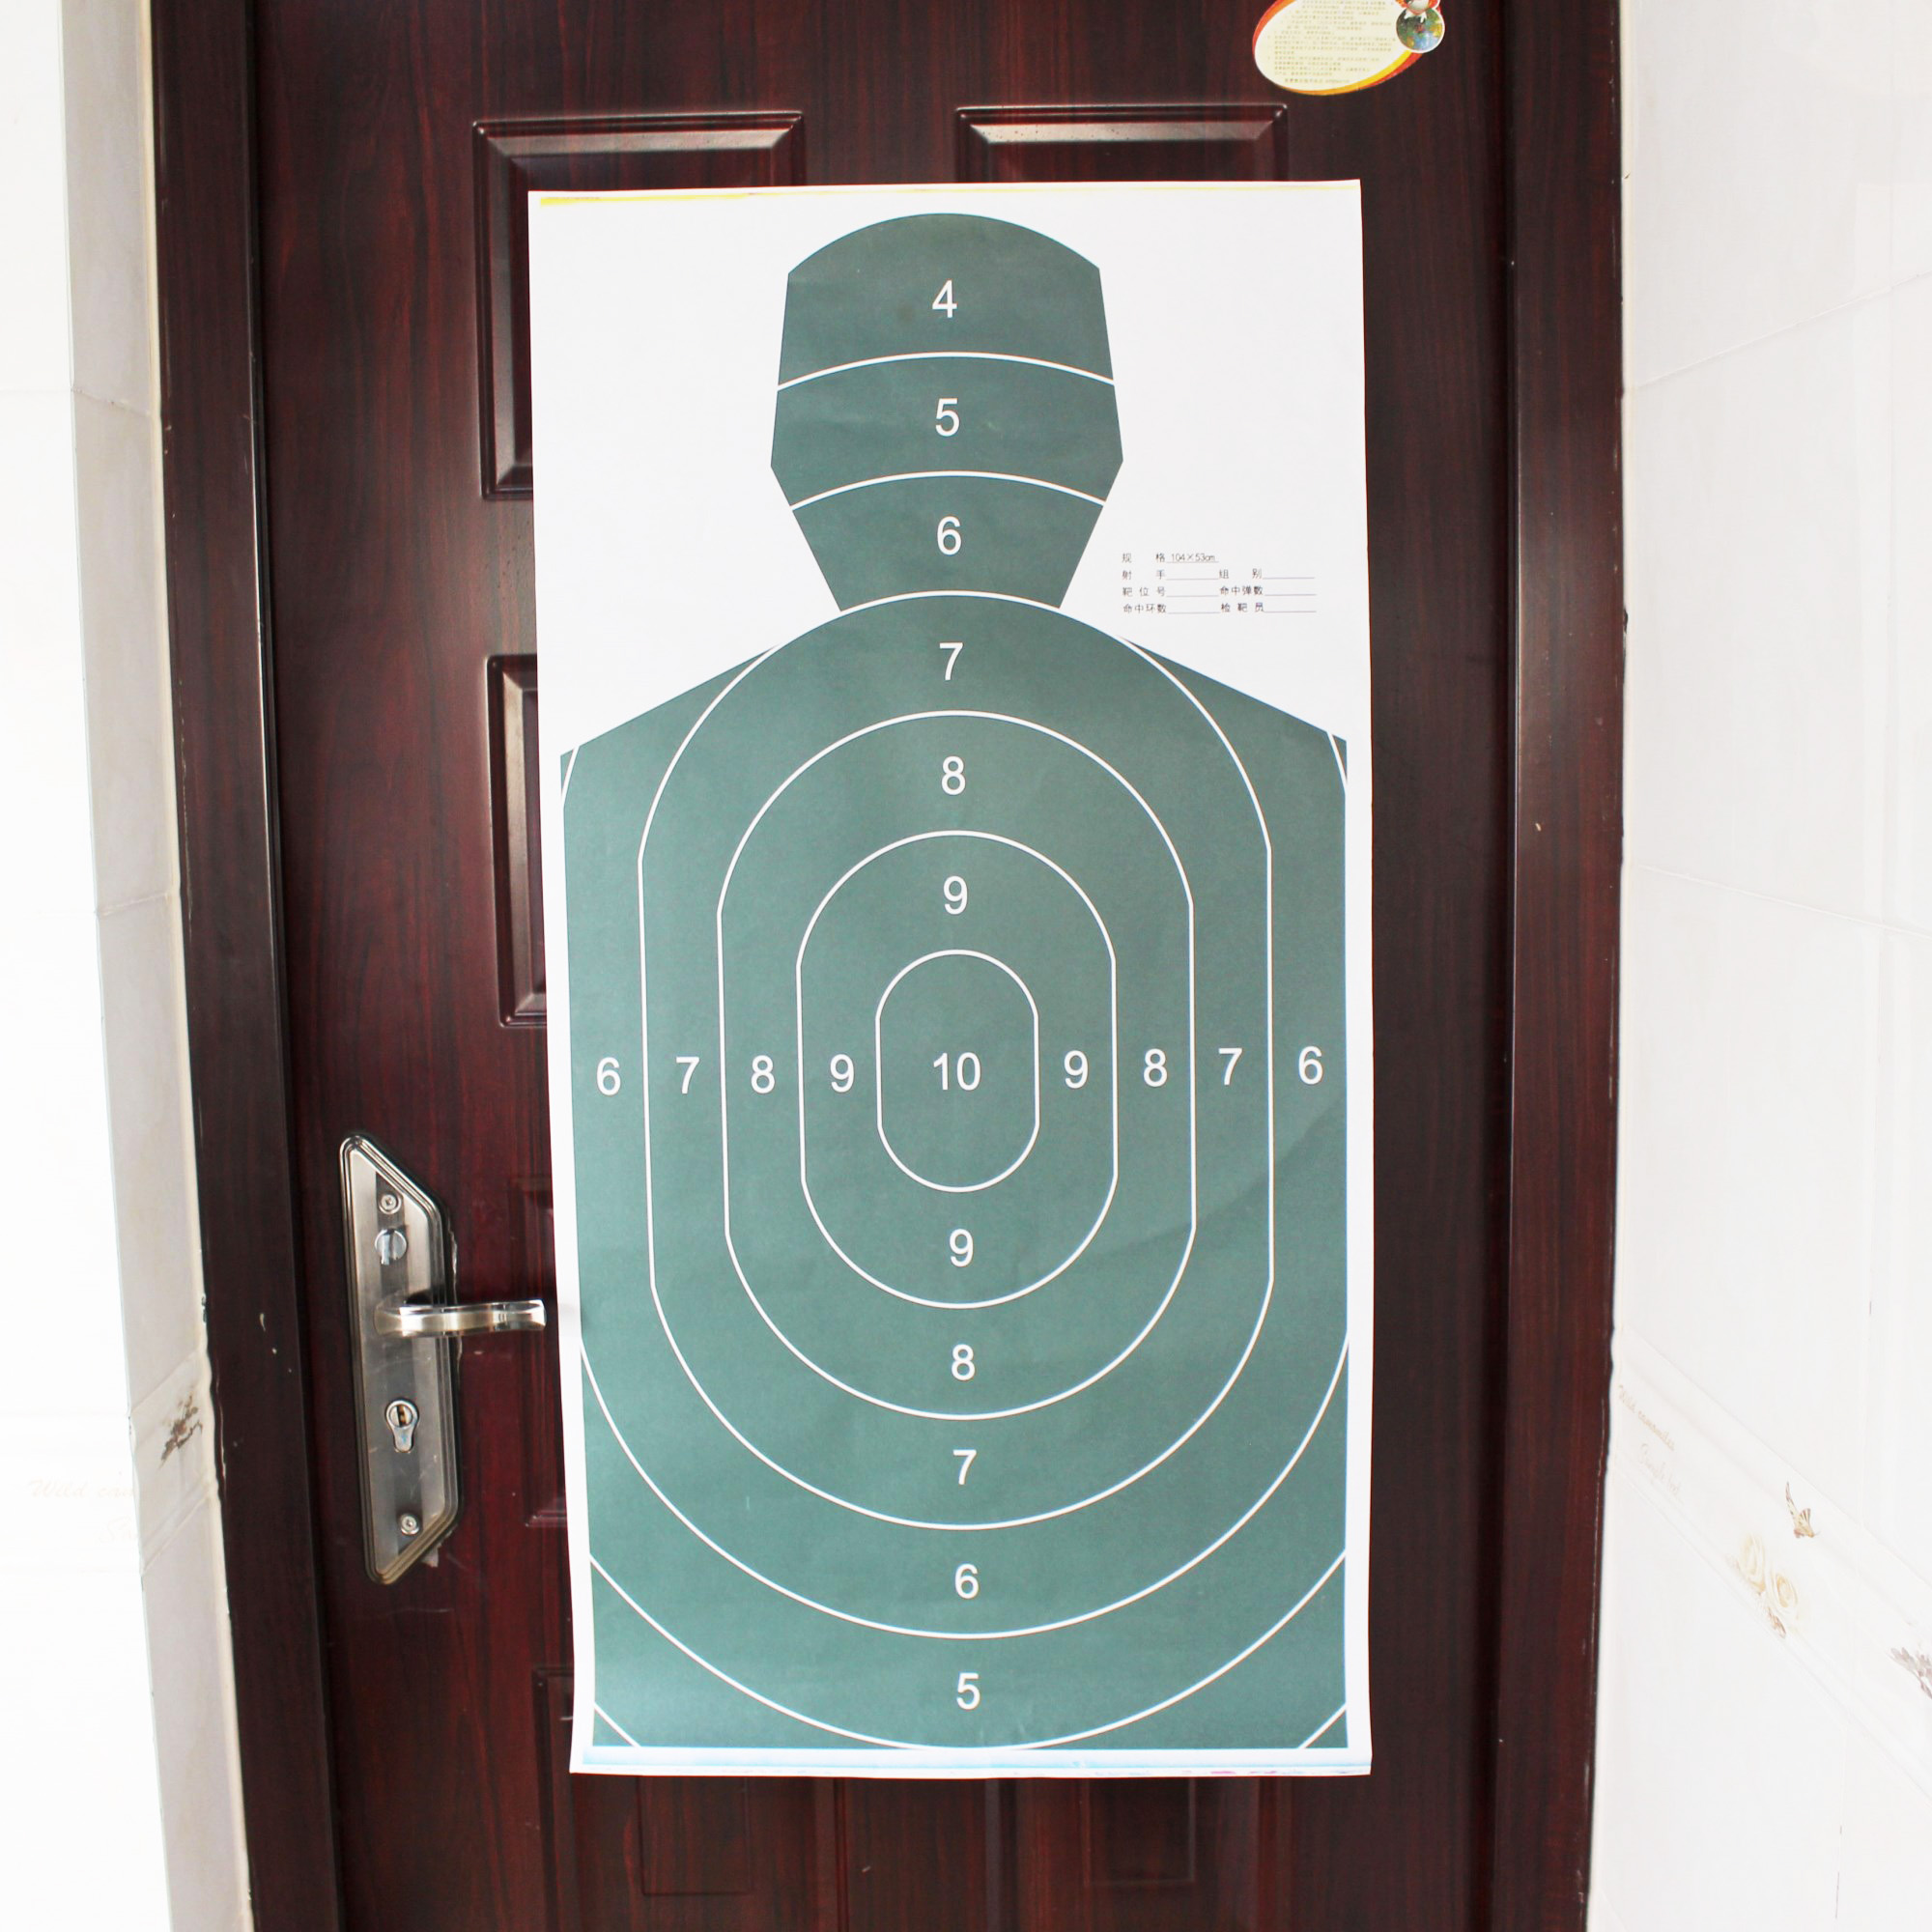 Archery Paper Targets Arrow Targets Shooting Accessories Ideal for Match and Daily Practice Use Outdoor Shooting Practice